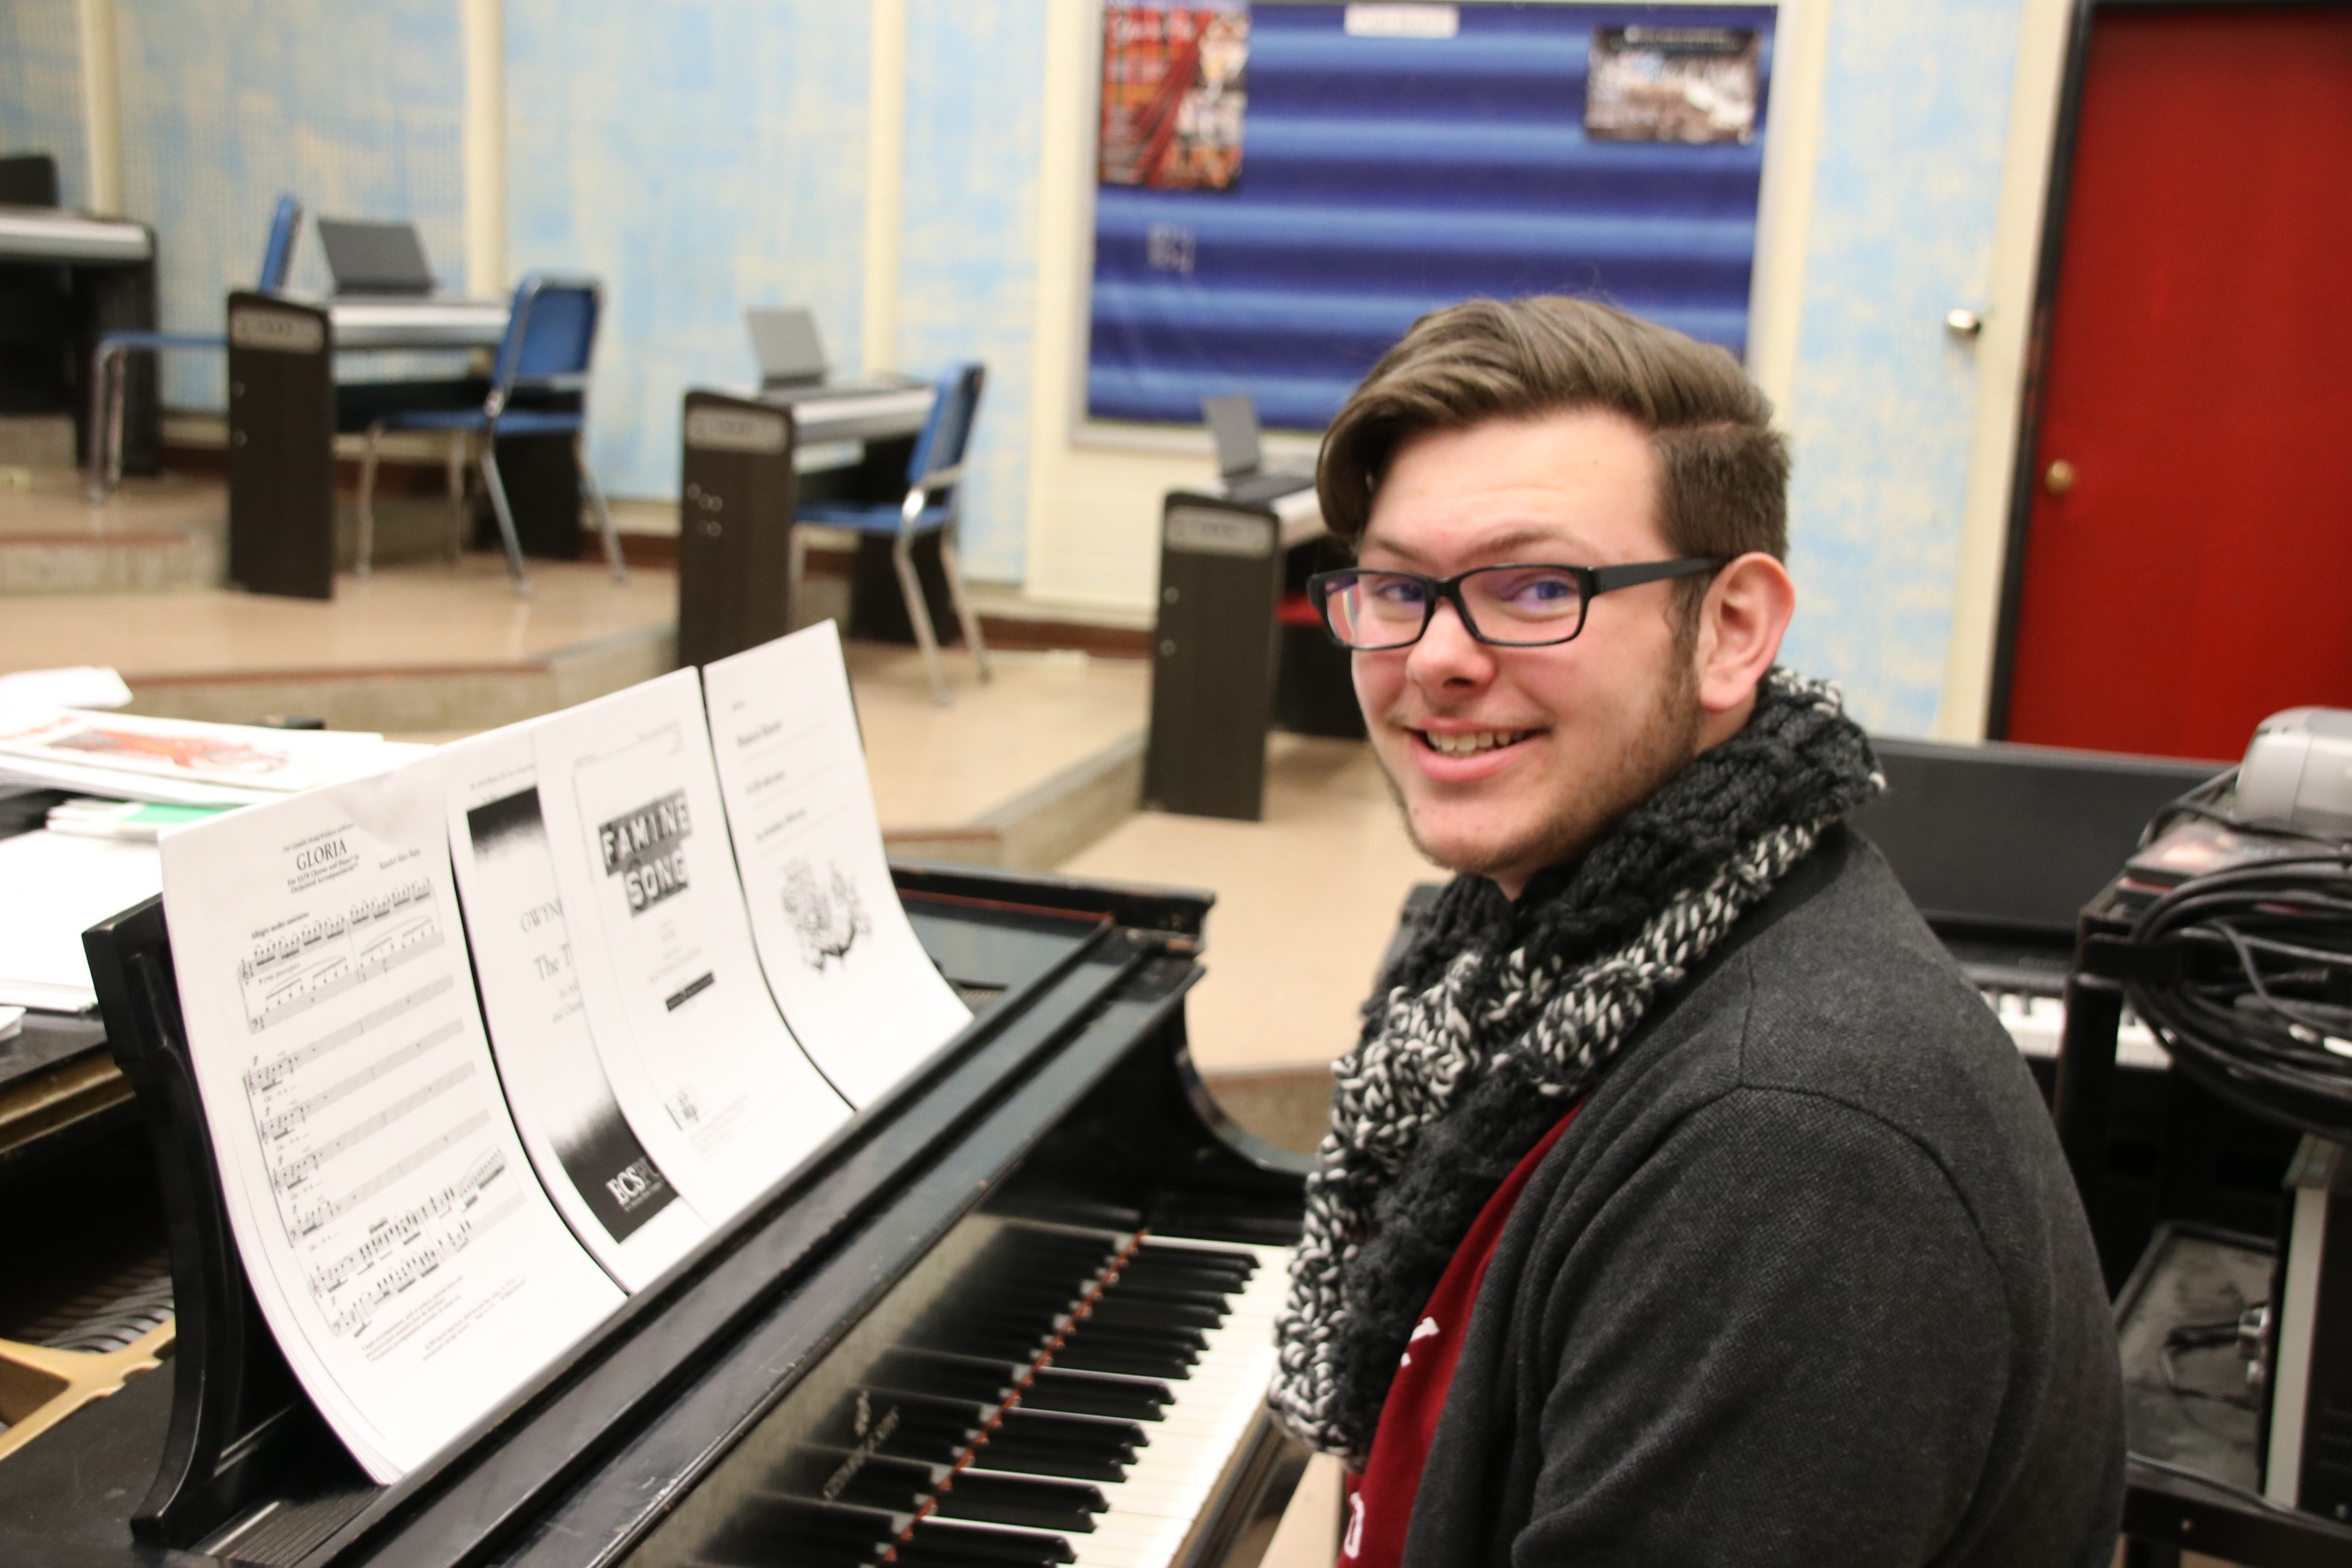 Caleb Randall, 16, of Acton, a junior at Sanford High School, has been selected to perform with the National Association for Music Education's All-Eastern Honors Mixed Choir in Atlantic City, New Jersey next month. TAMMY WELLS/Journal Tribune